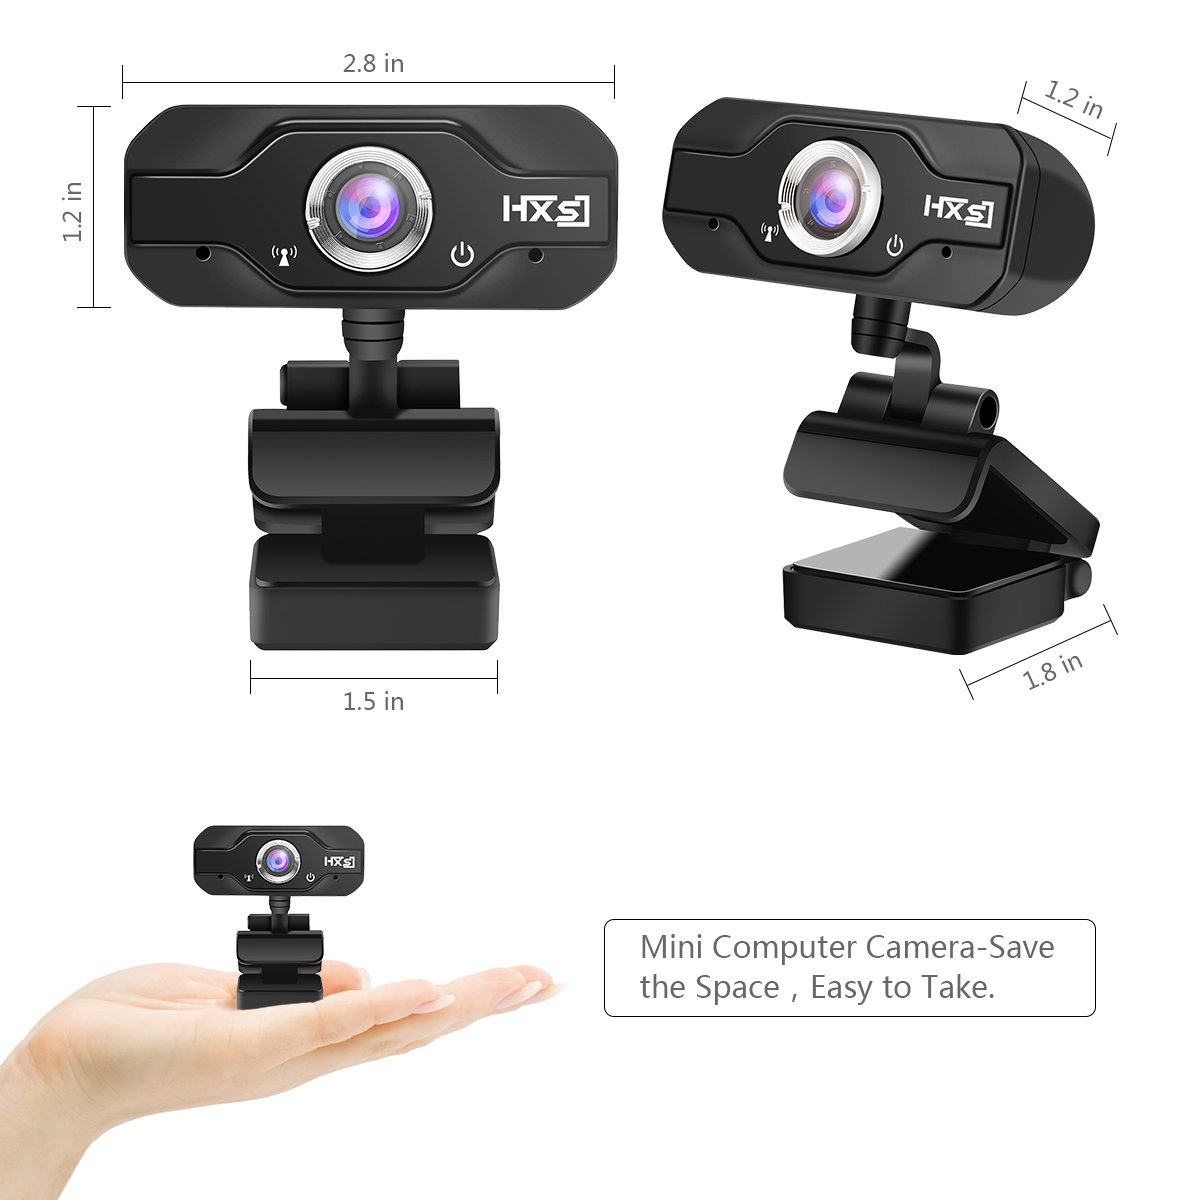 720P HD Webcam, EIVOTOR USB Mini Computer Camera with Built-in Microphone for Laptops and Desktop,Black by EIVOTOR (Image #4)